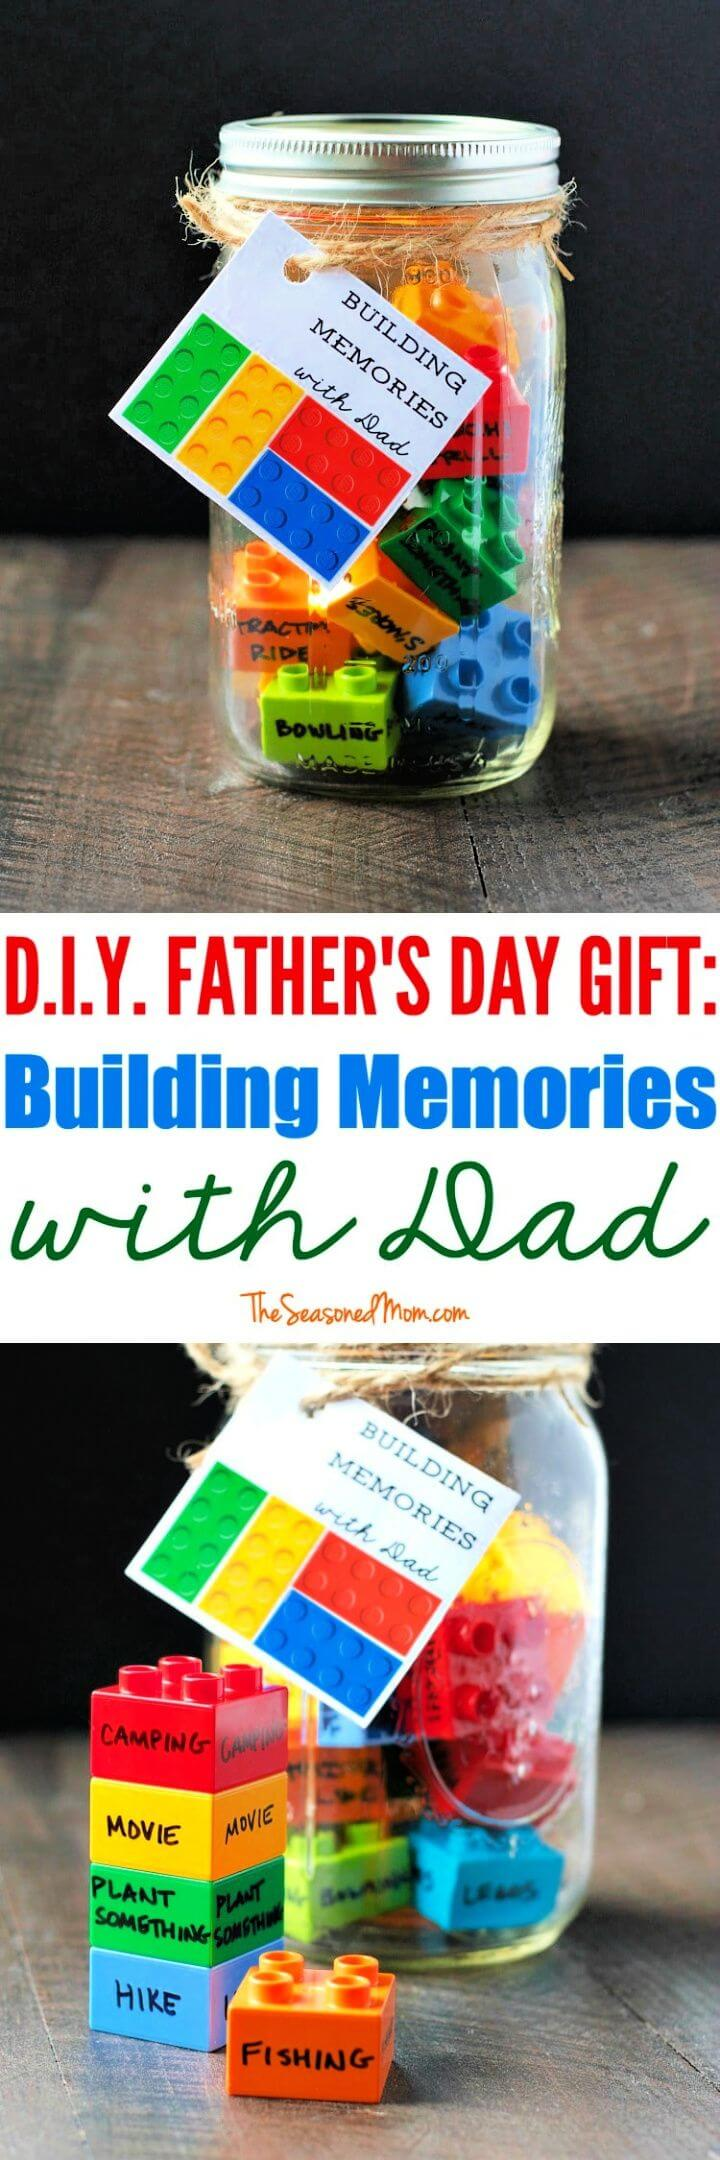 DIY Amazing Building Memories with Dad Legos For Fatherday